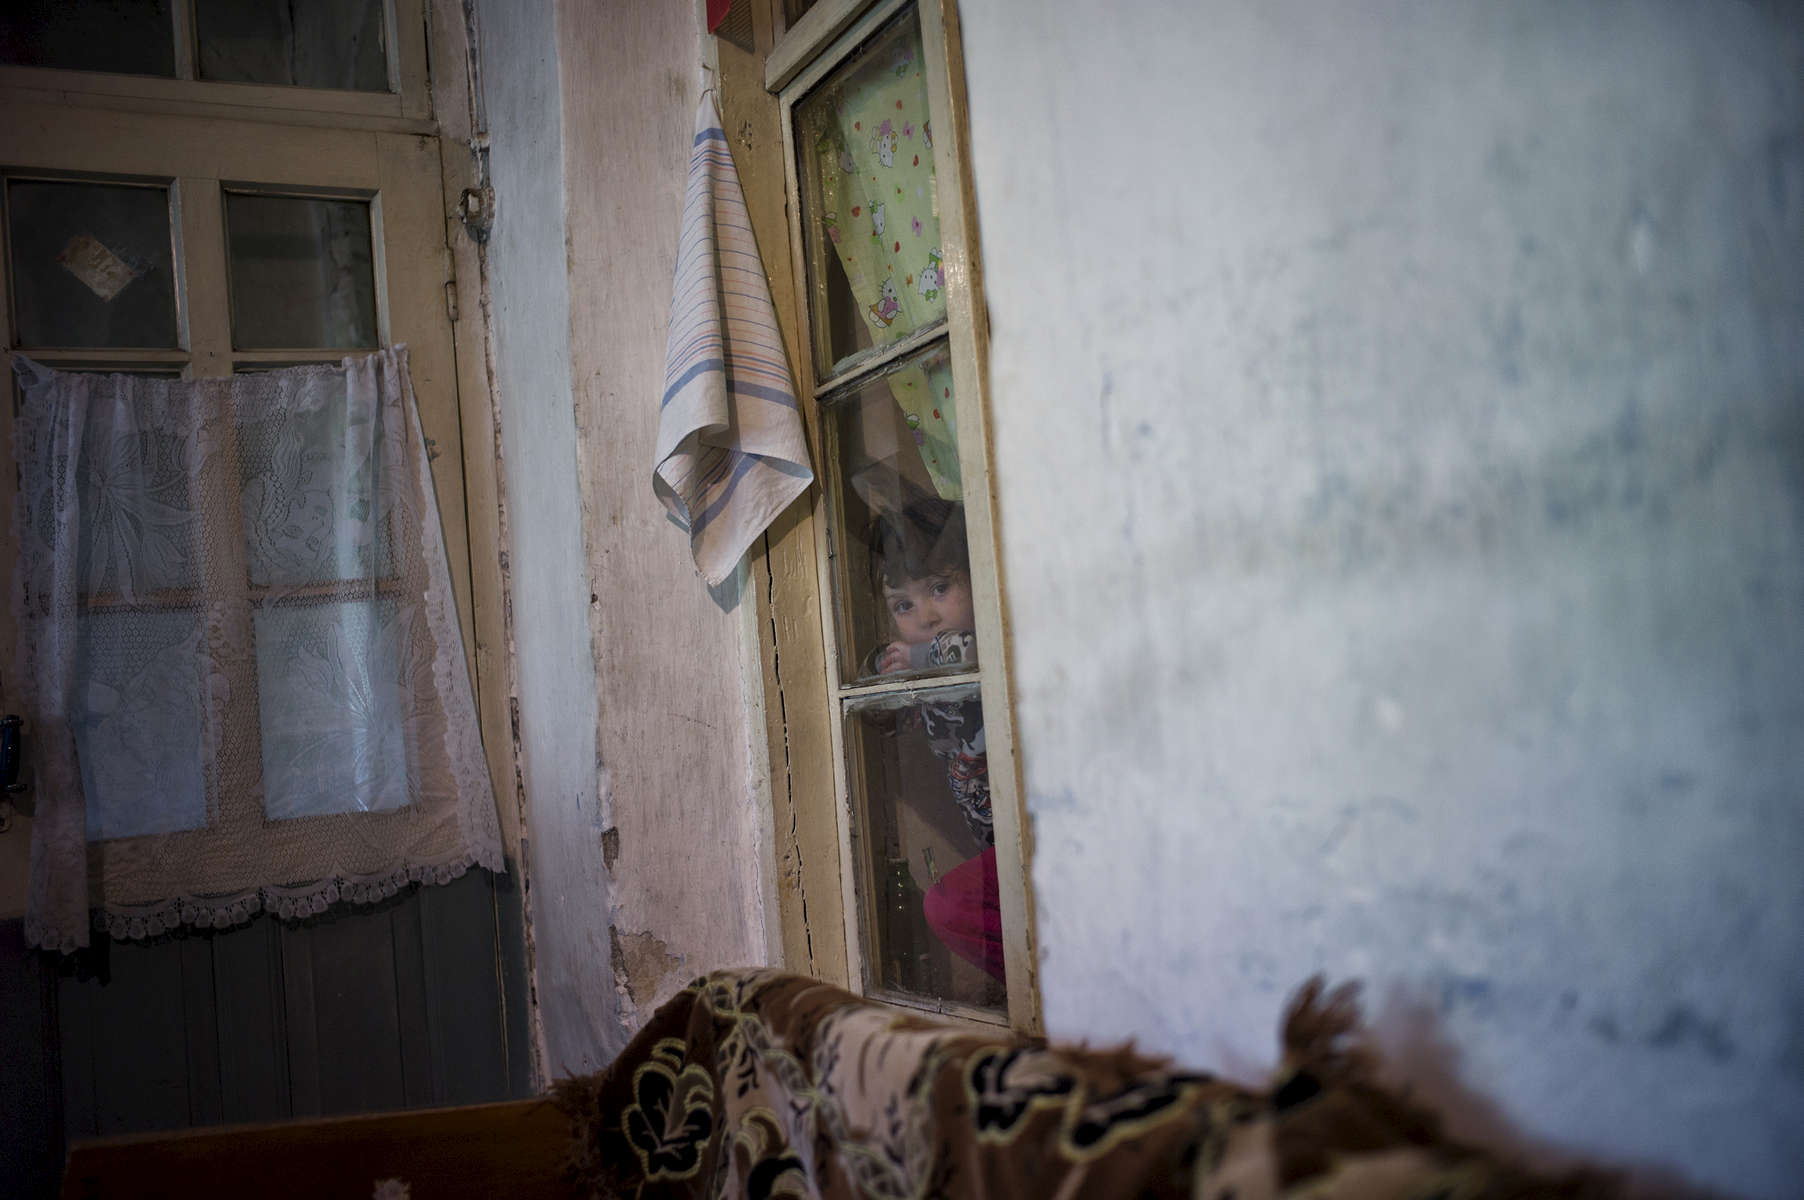 A young girl looks through a window in her home as her father, who lost his leg in a mine accident, talks to visitors in Khtsaberd village.